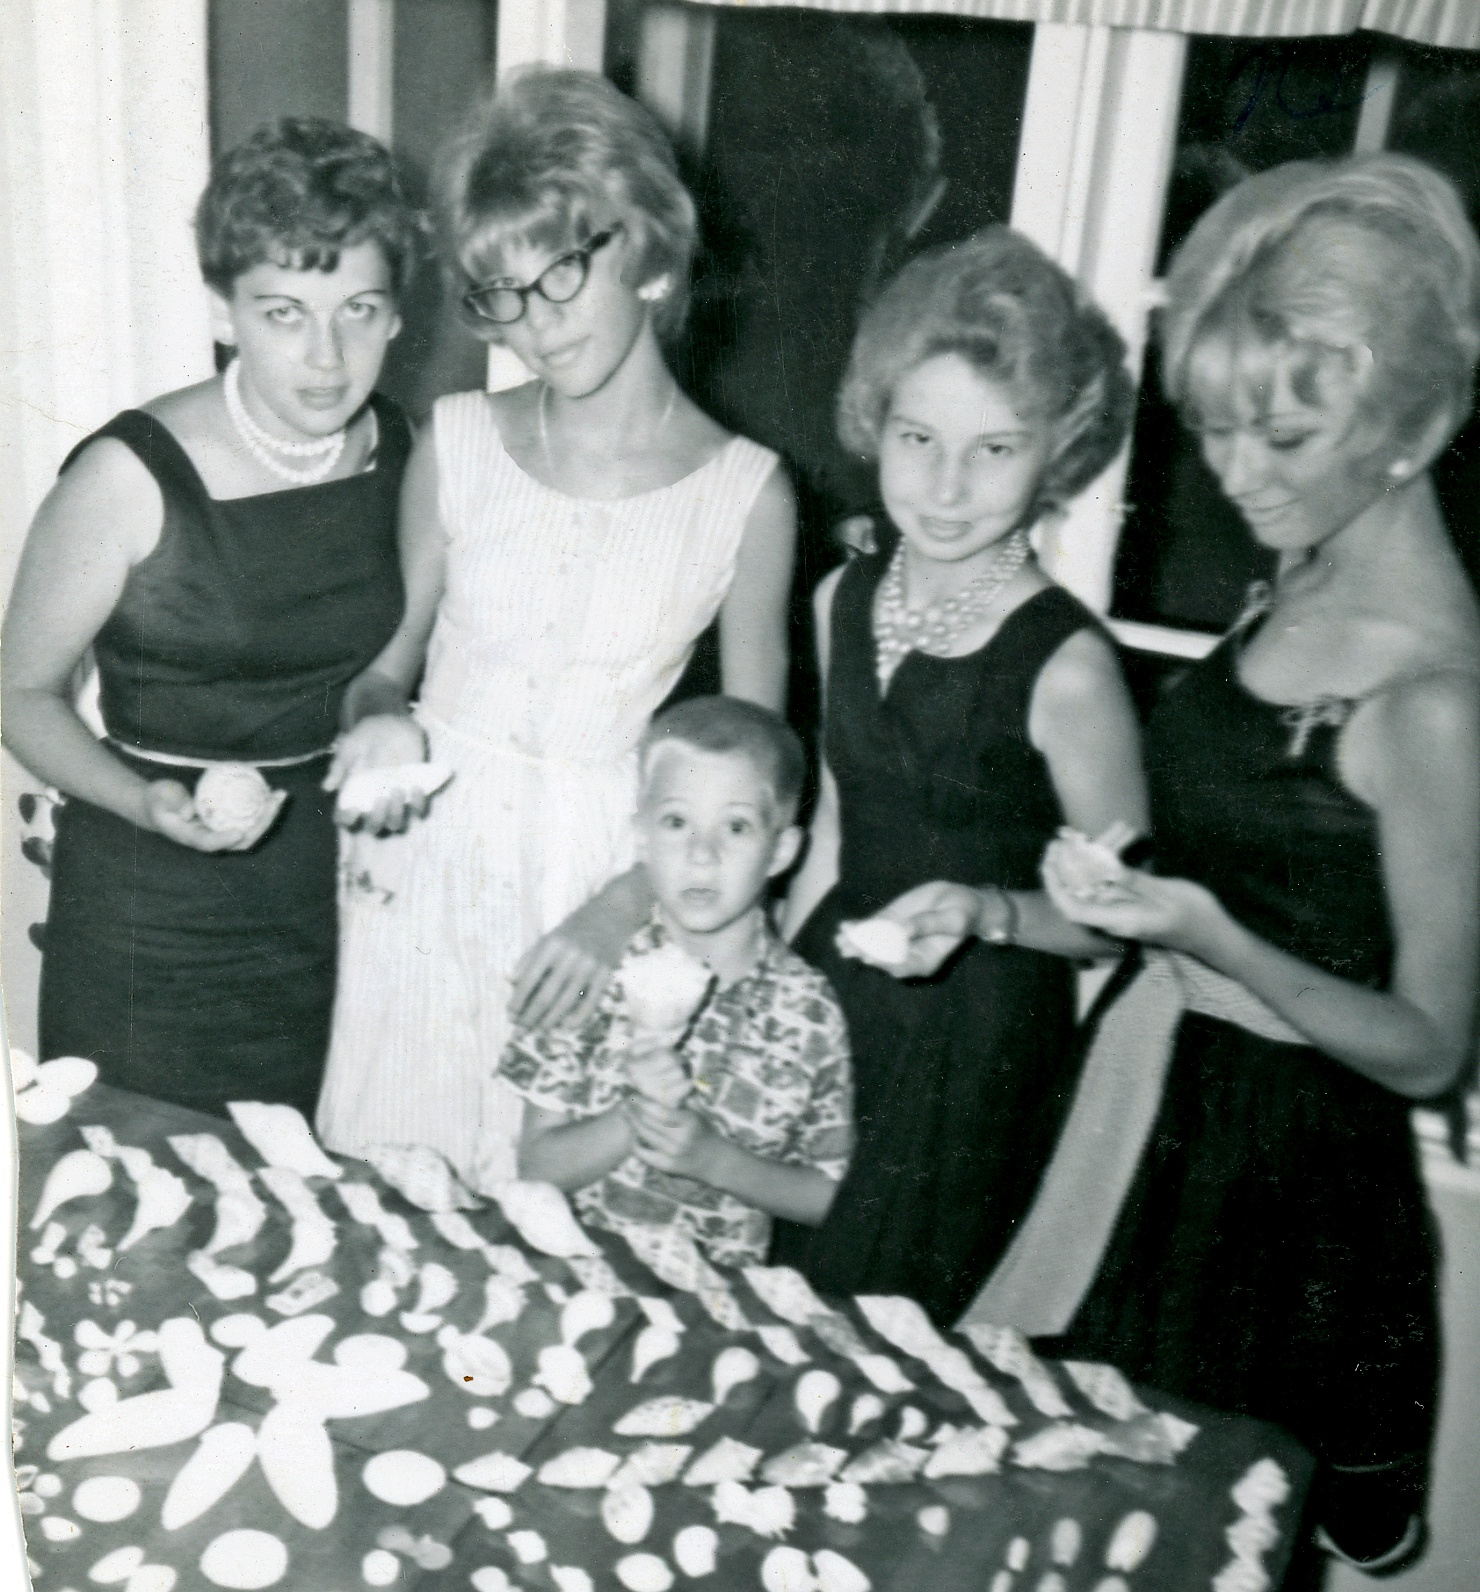 That's Joan on the left with her sisters Tina beside her and Becky on the end. Don't know who the other woman is. The little guy is me. Frankly, I think I'm more properly outfitted for displaying shells than the lovely ladies.